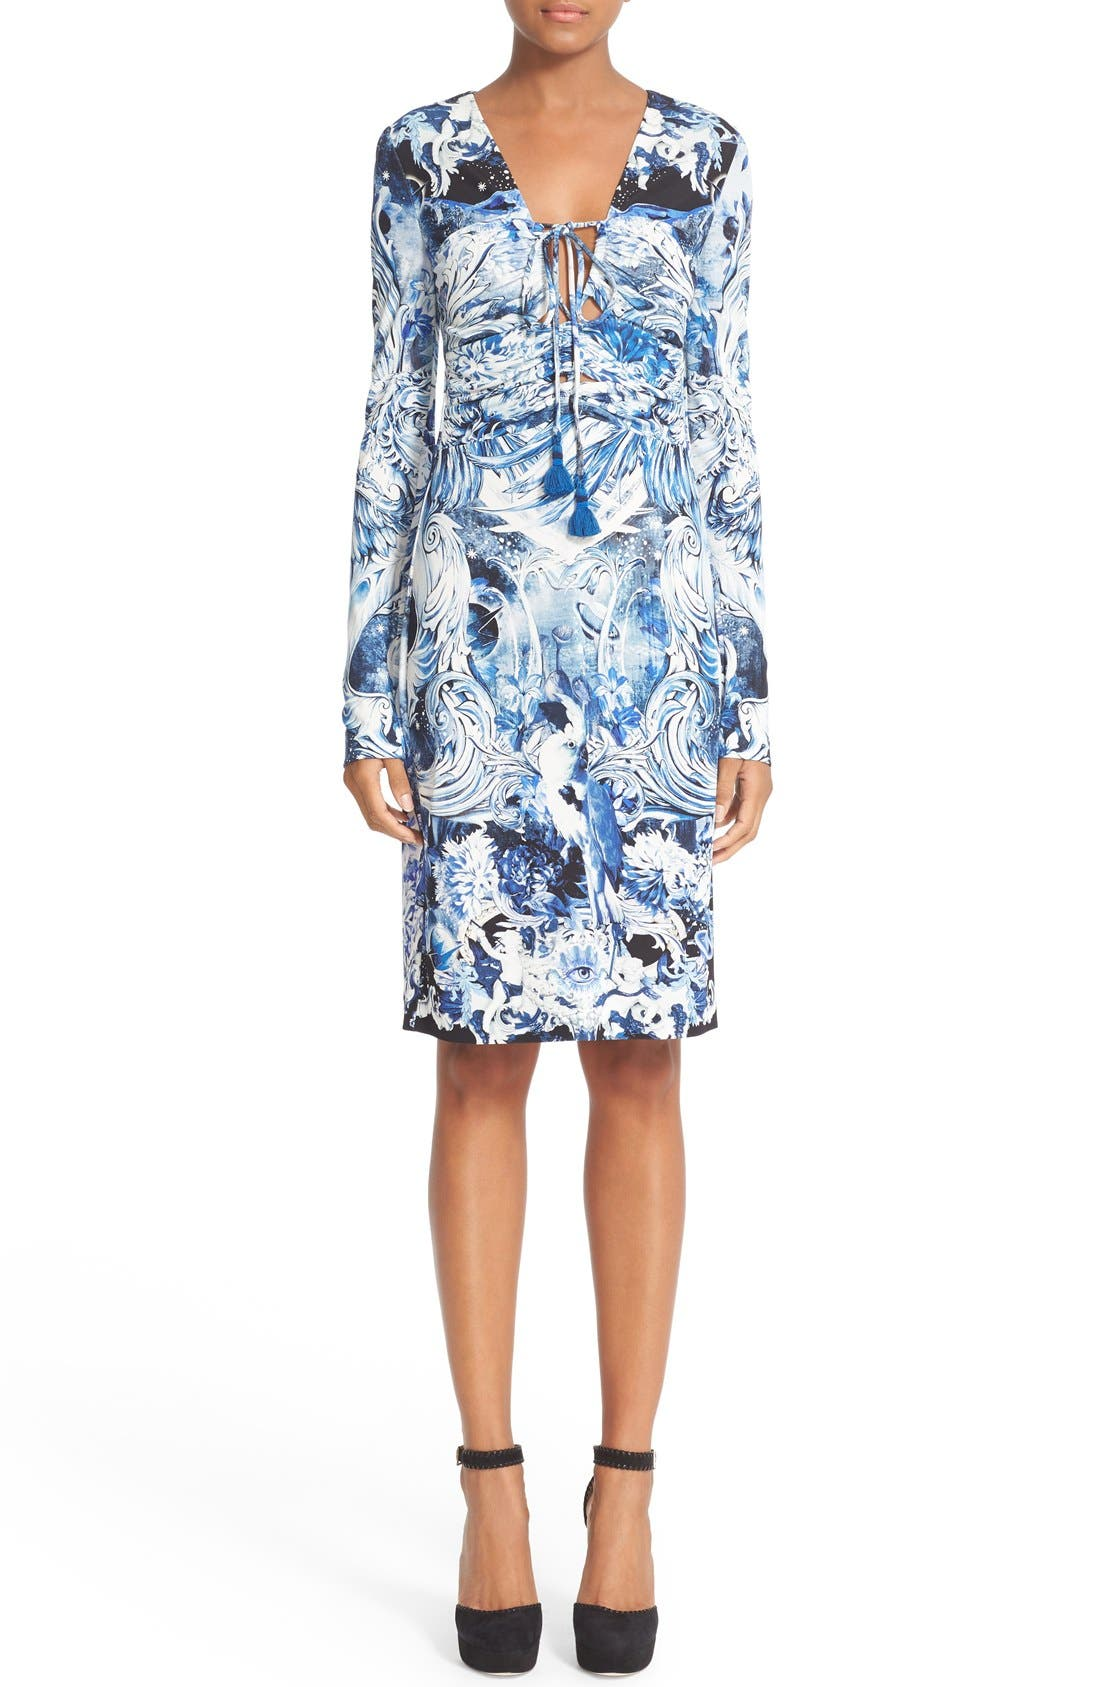 ROBERTO CAVALLI Lace-Up Print Jersey Dress